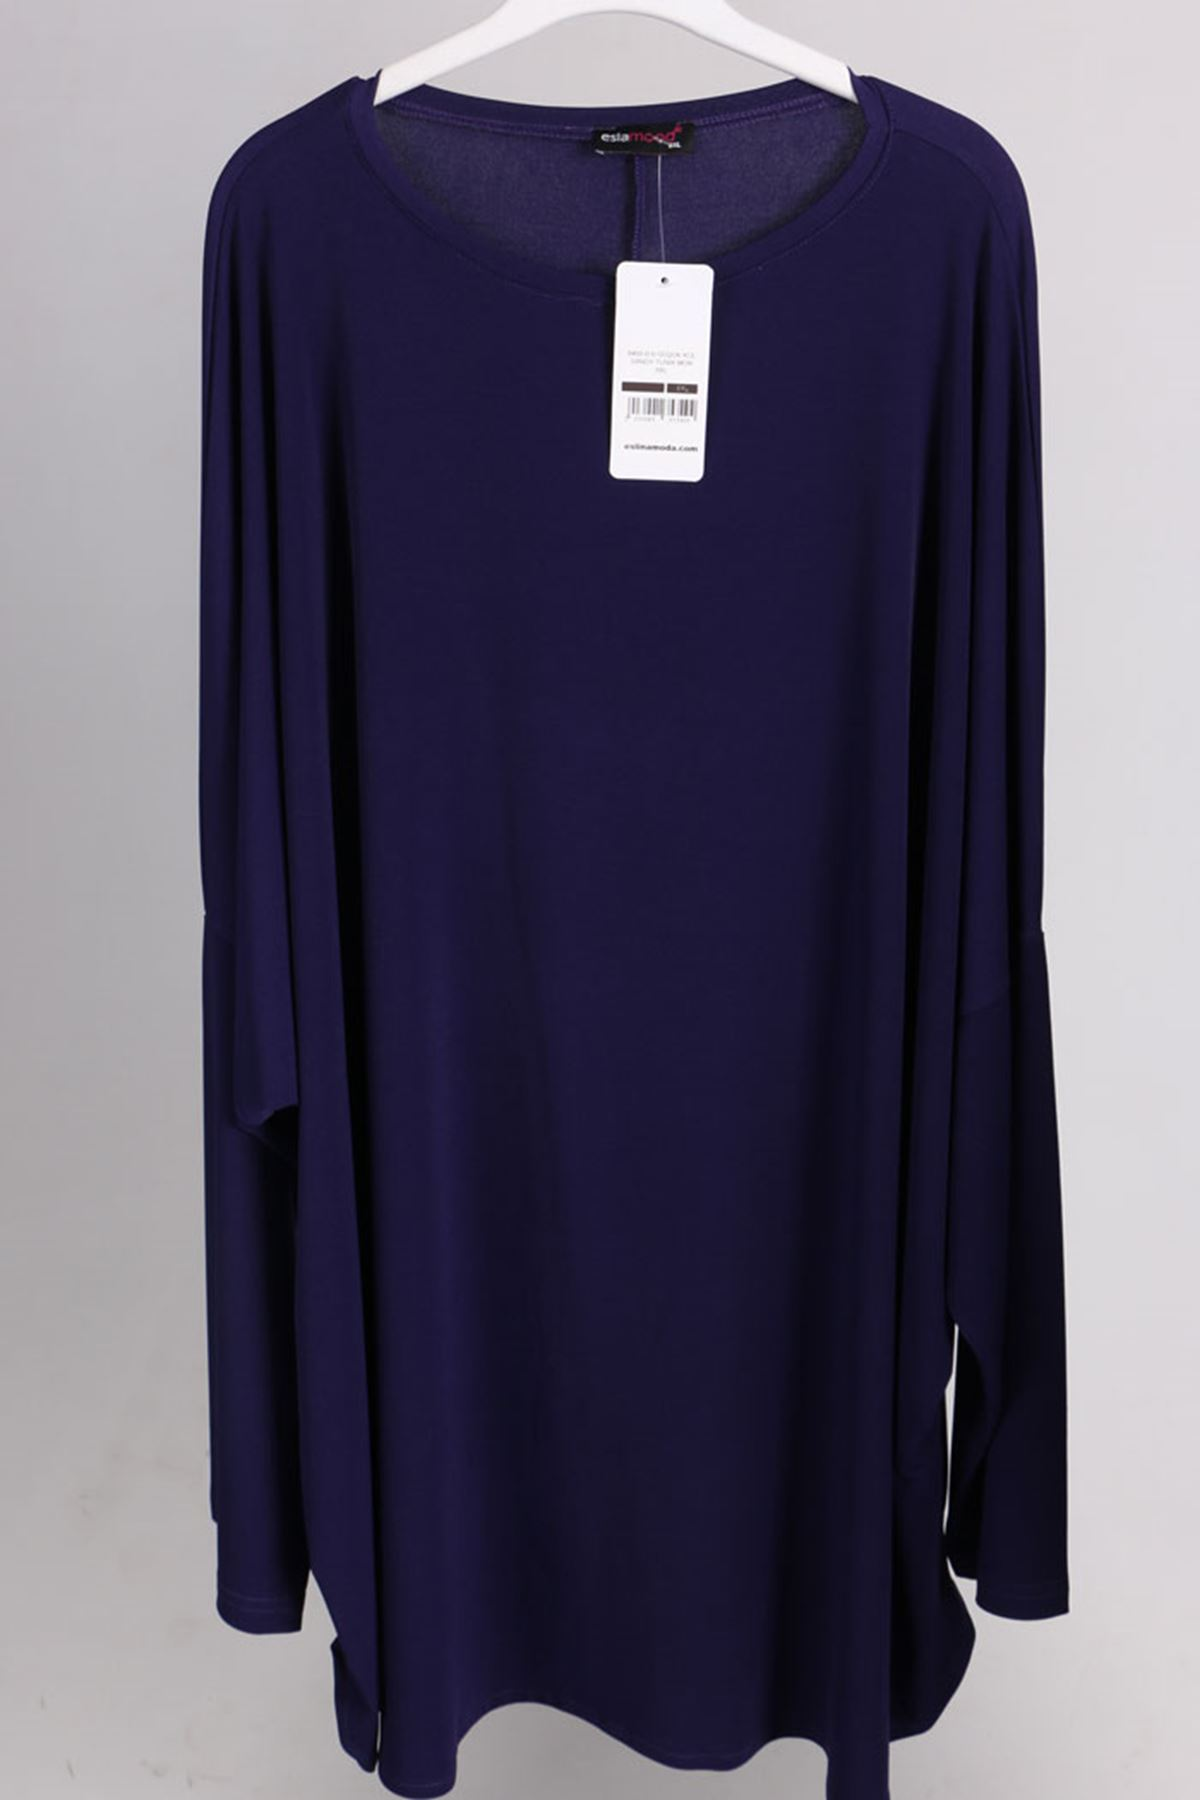 8459 Oversize with Low Sleeve Tunic - Purple